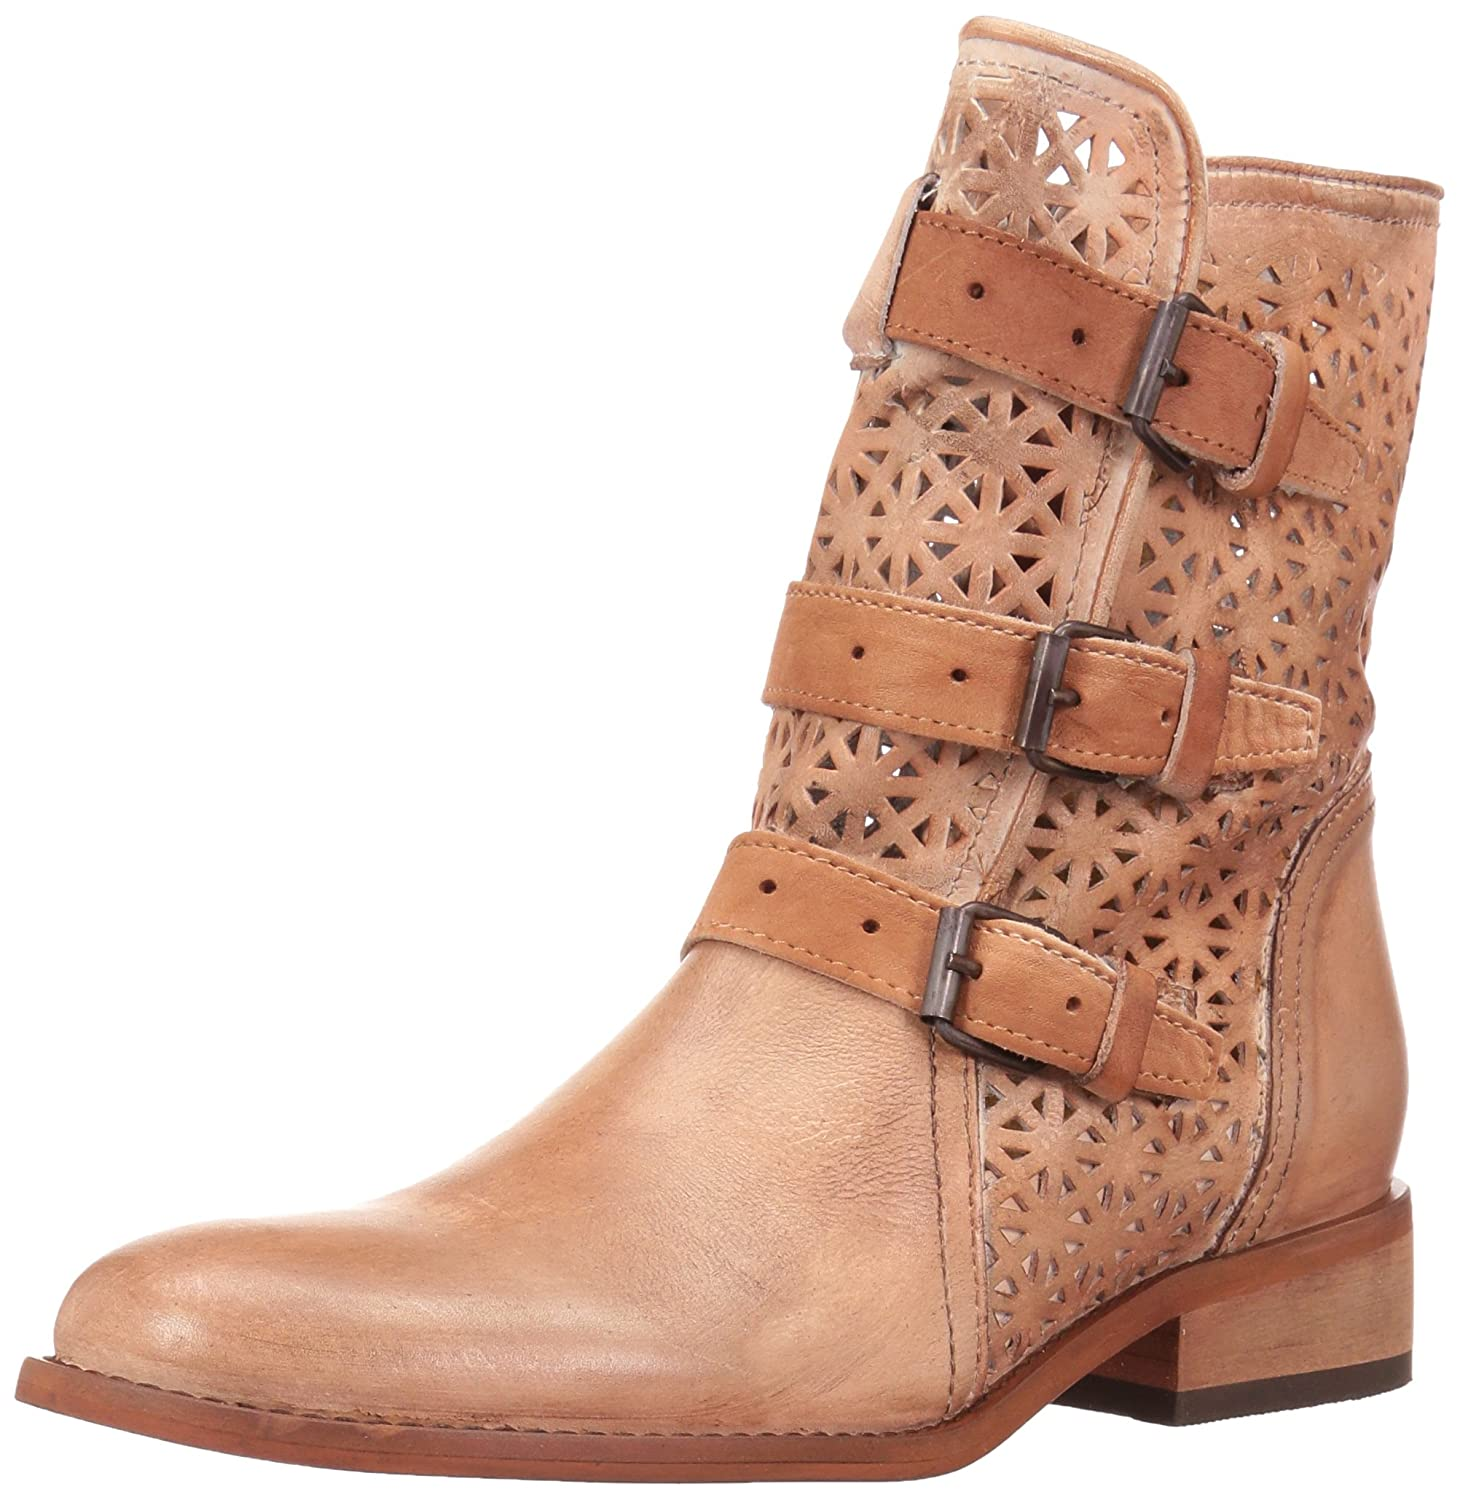 Sbicca Women's Annex Engineer Boot B06XFYQKH8 9 B(M) US|Light Brown